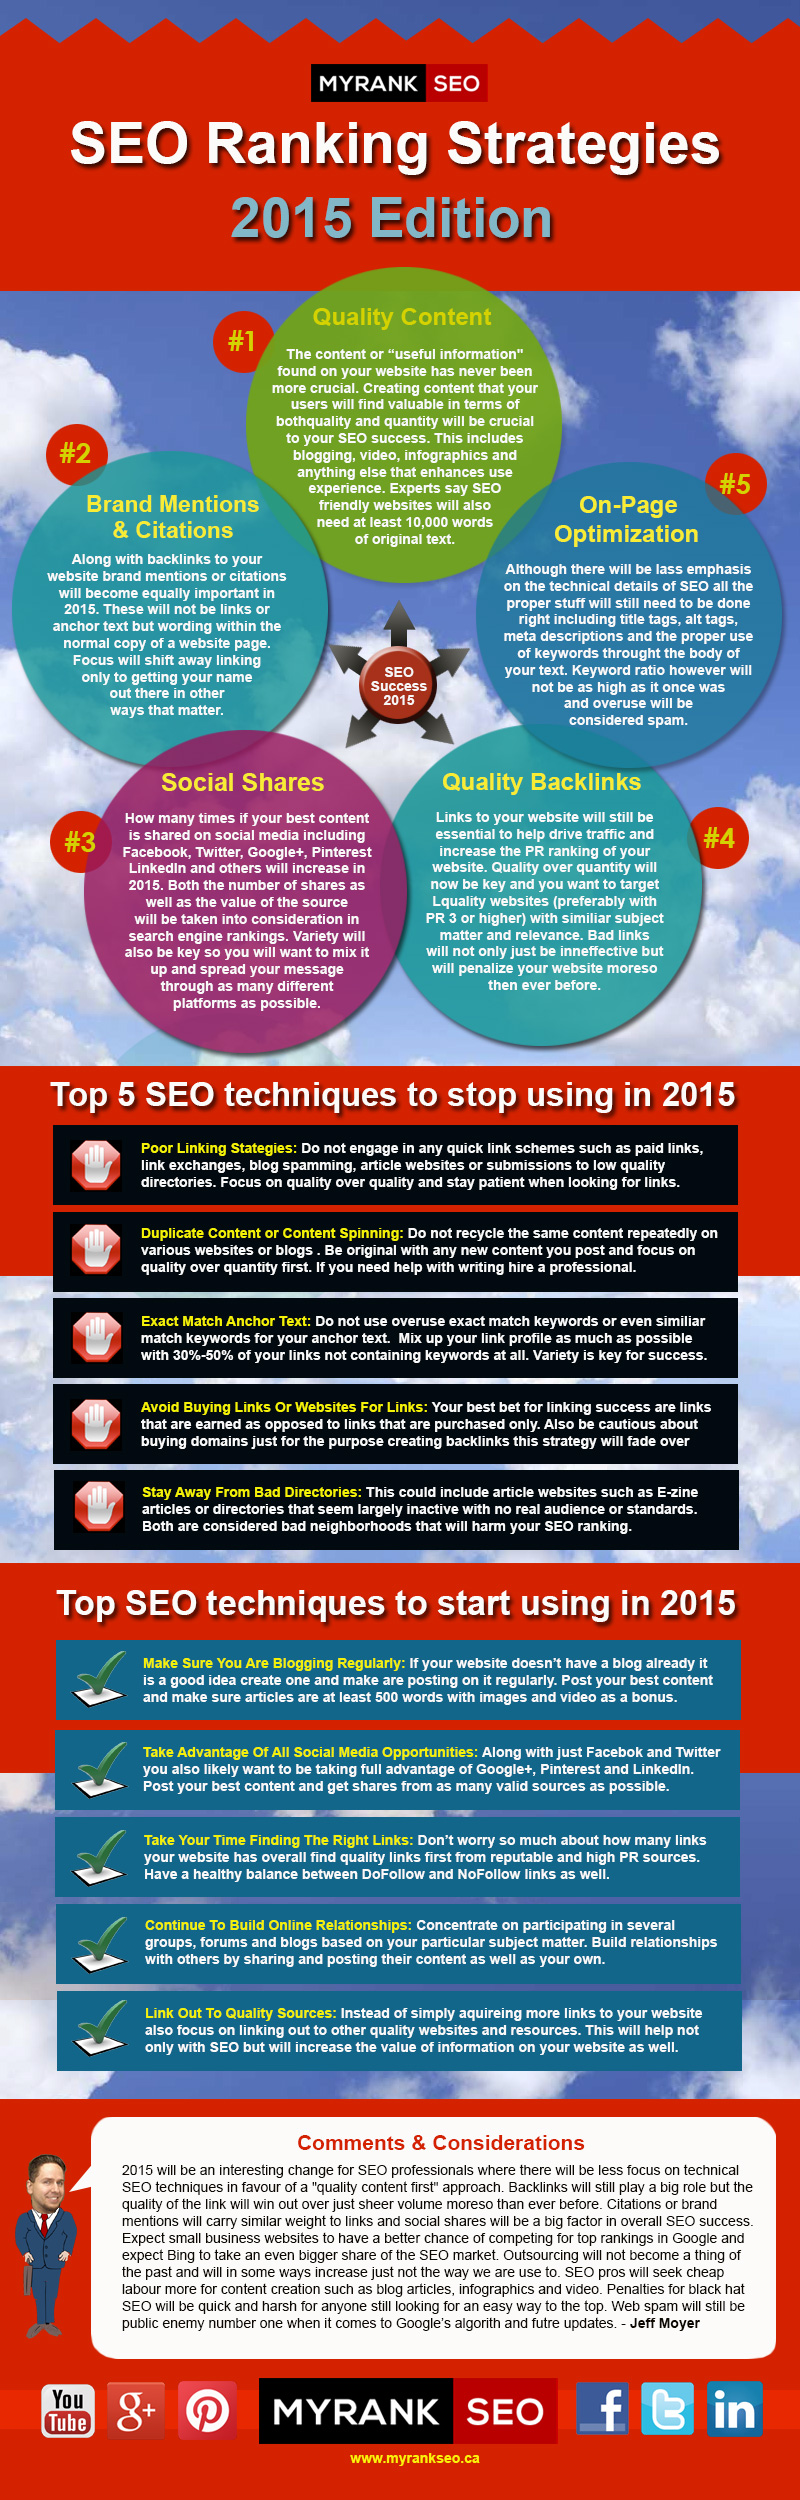 SEO Strategies 2015 Infographic